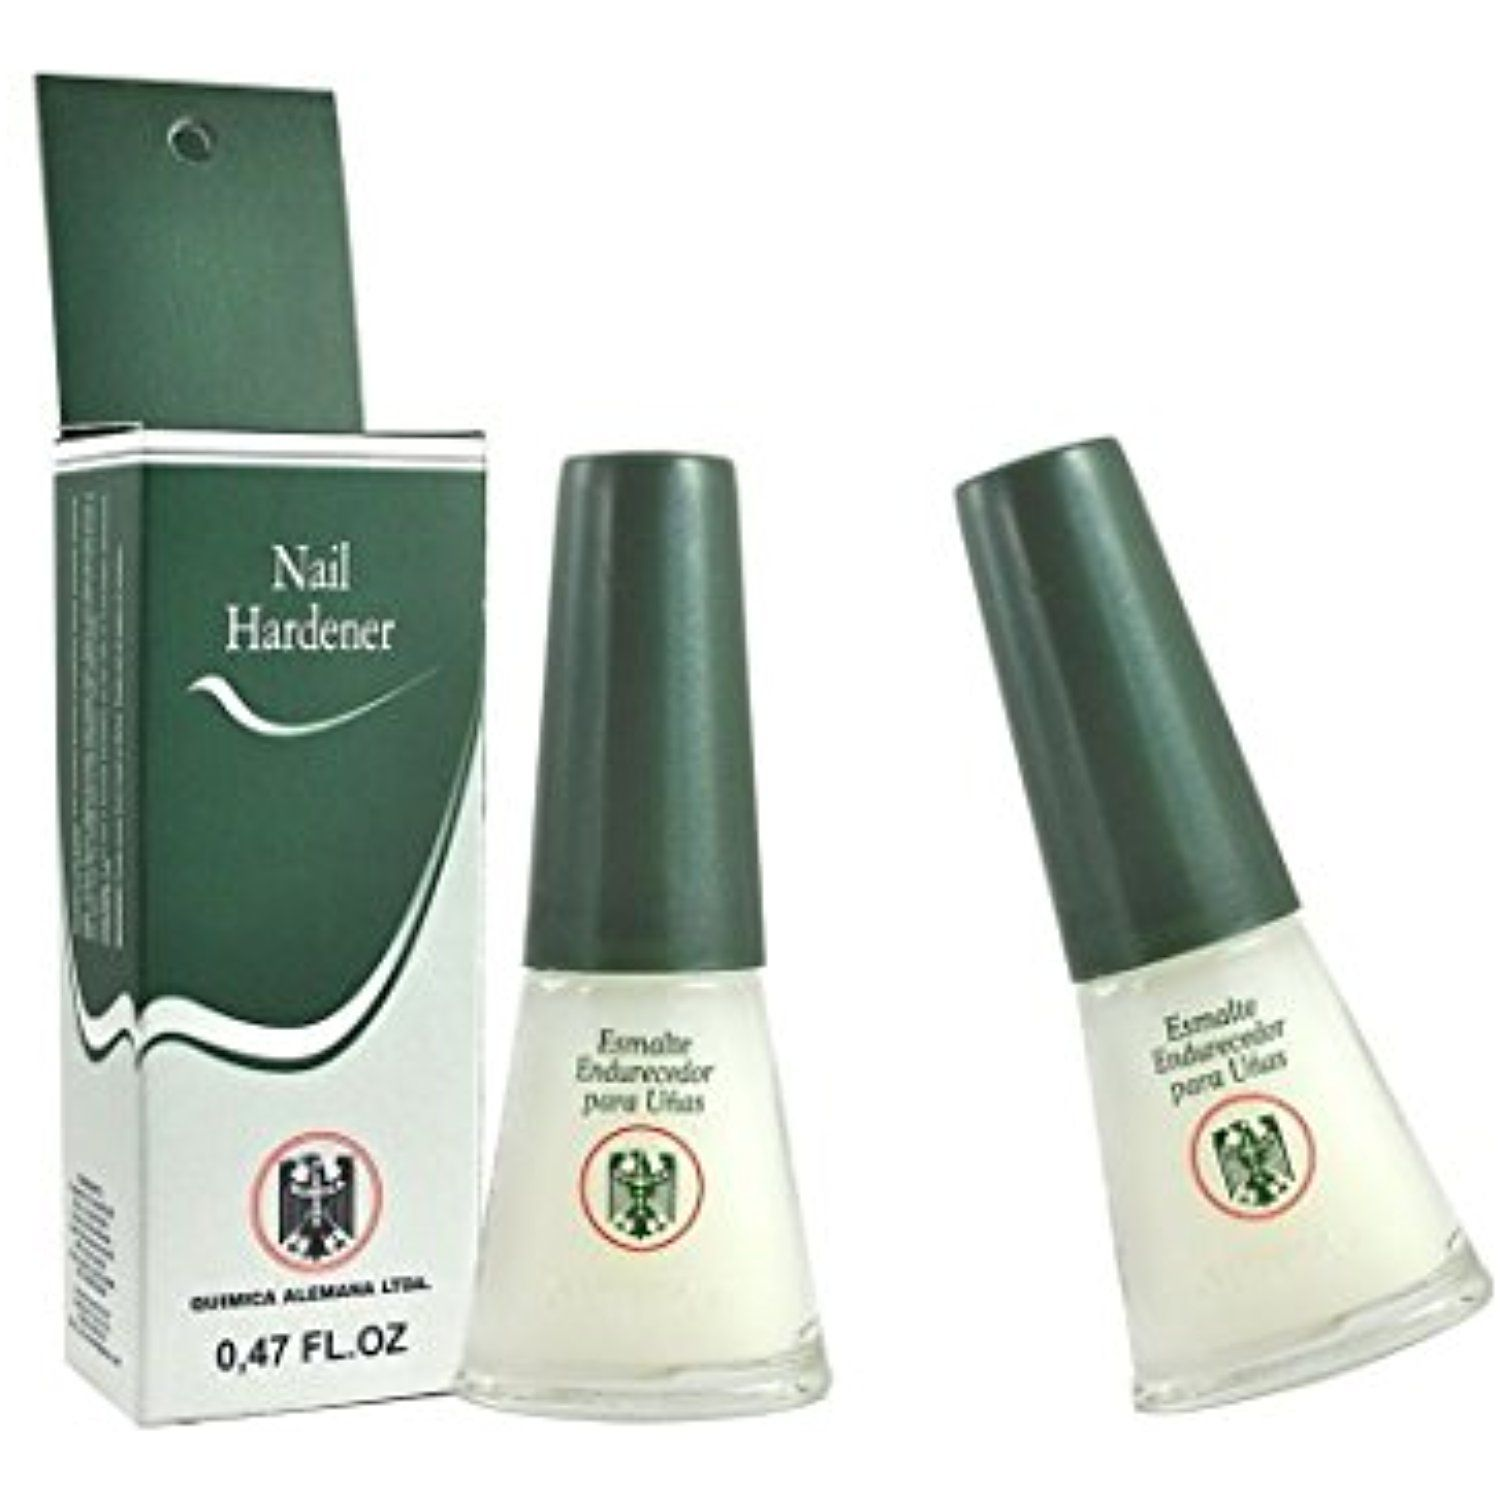 QUIMICA ALEMANA Nail Hardener (protective barrier prevents chipping ...